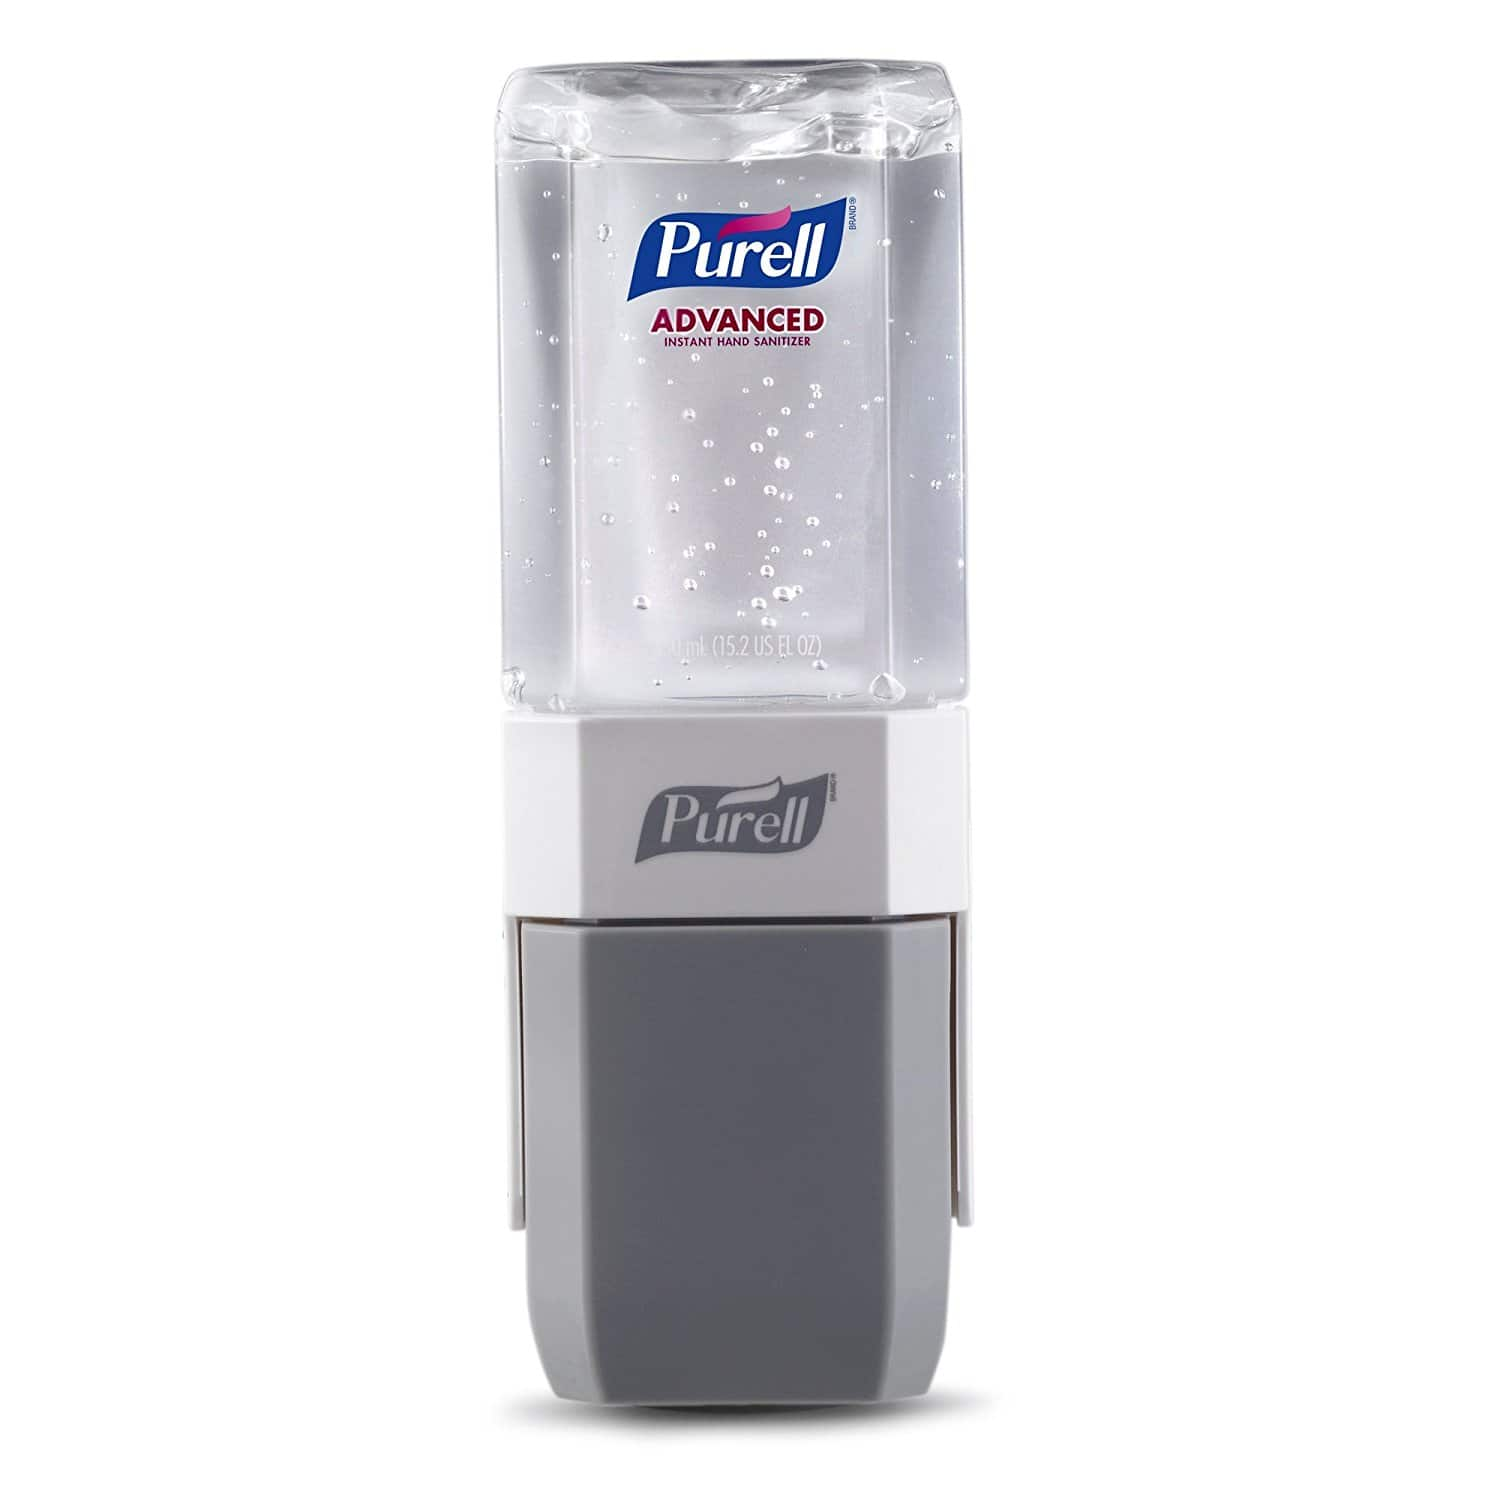 Amazon Prime Day - Purell 1450-D1 Everywhere System Starter Kit (Base and Refill) $4.49 + Tax